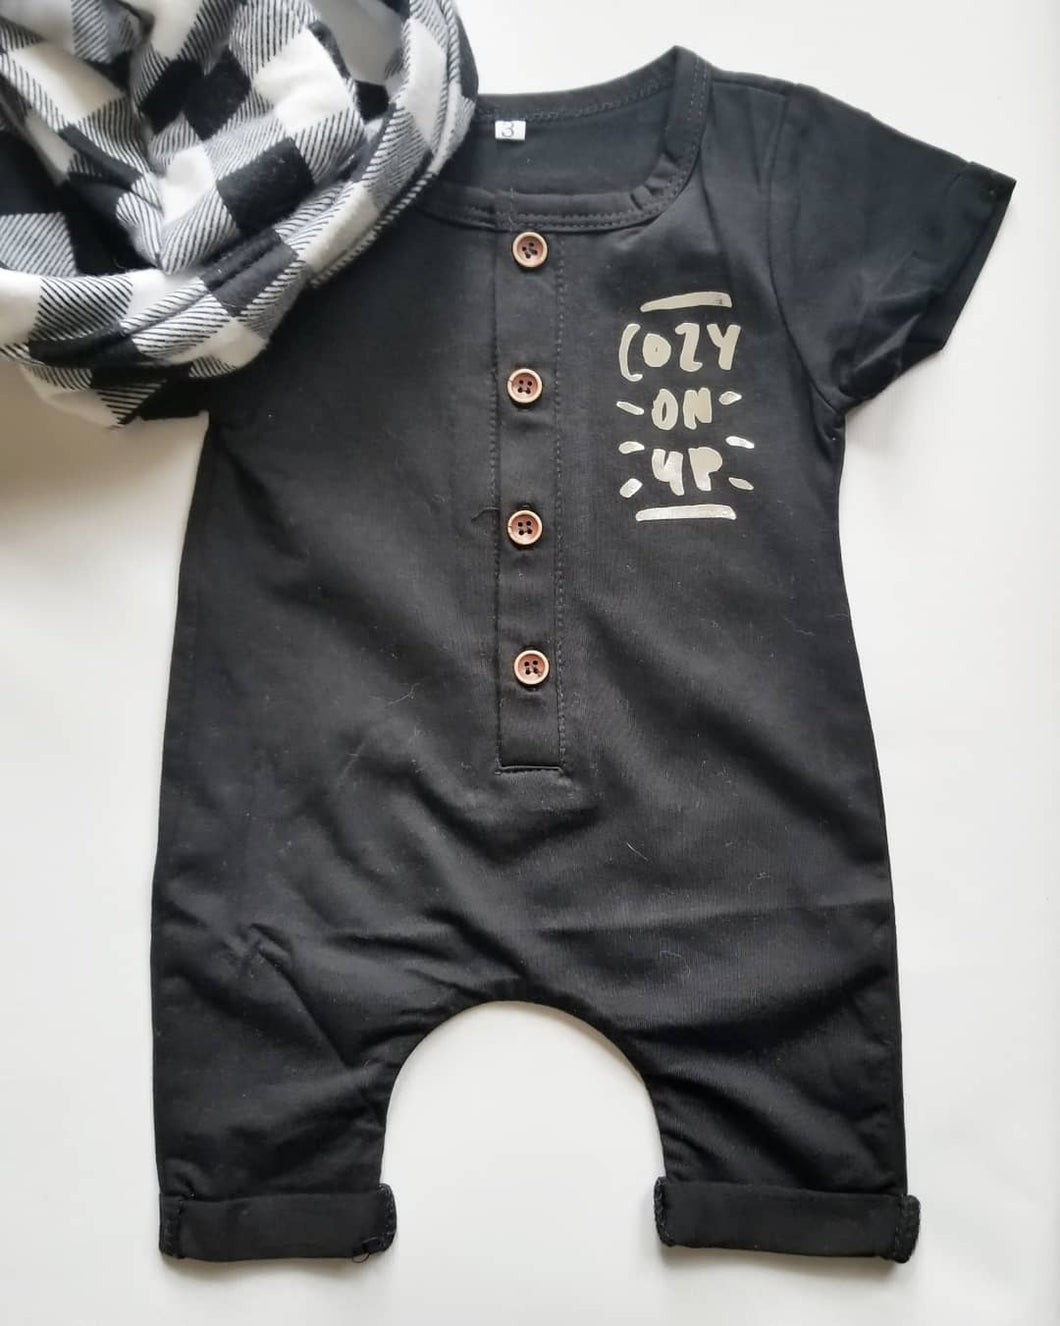 Cozy on up baby romper in black